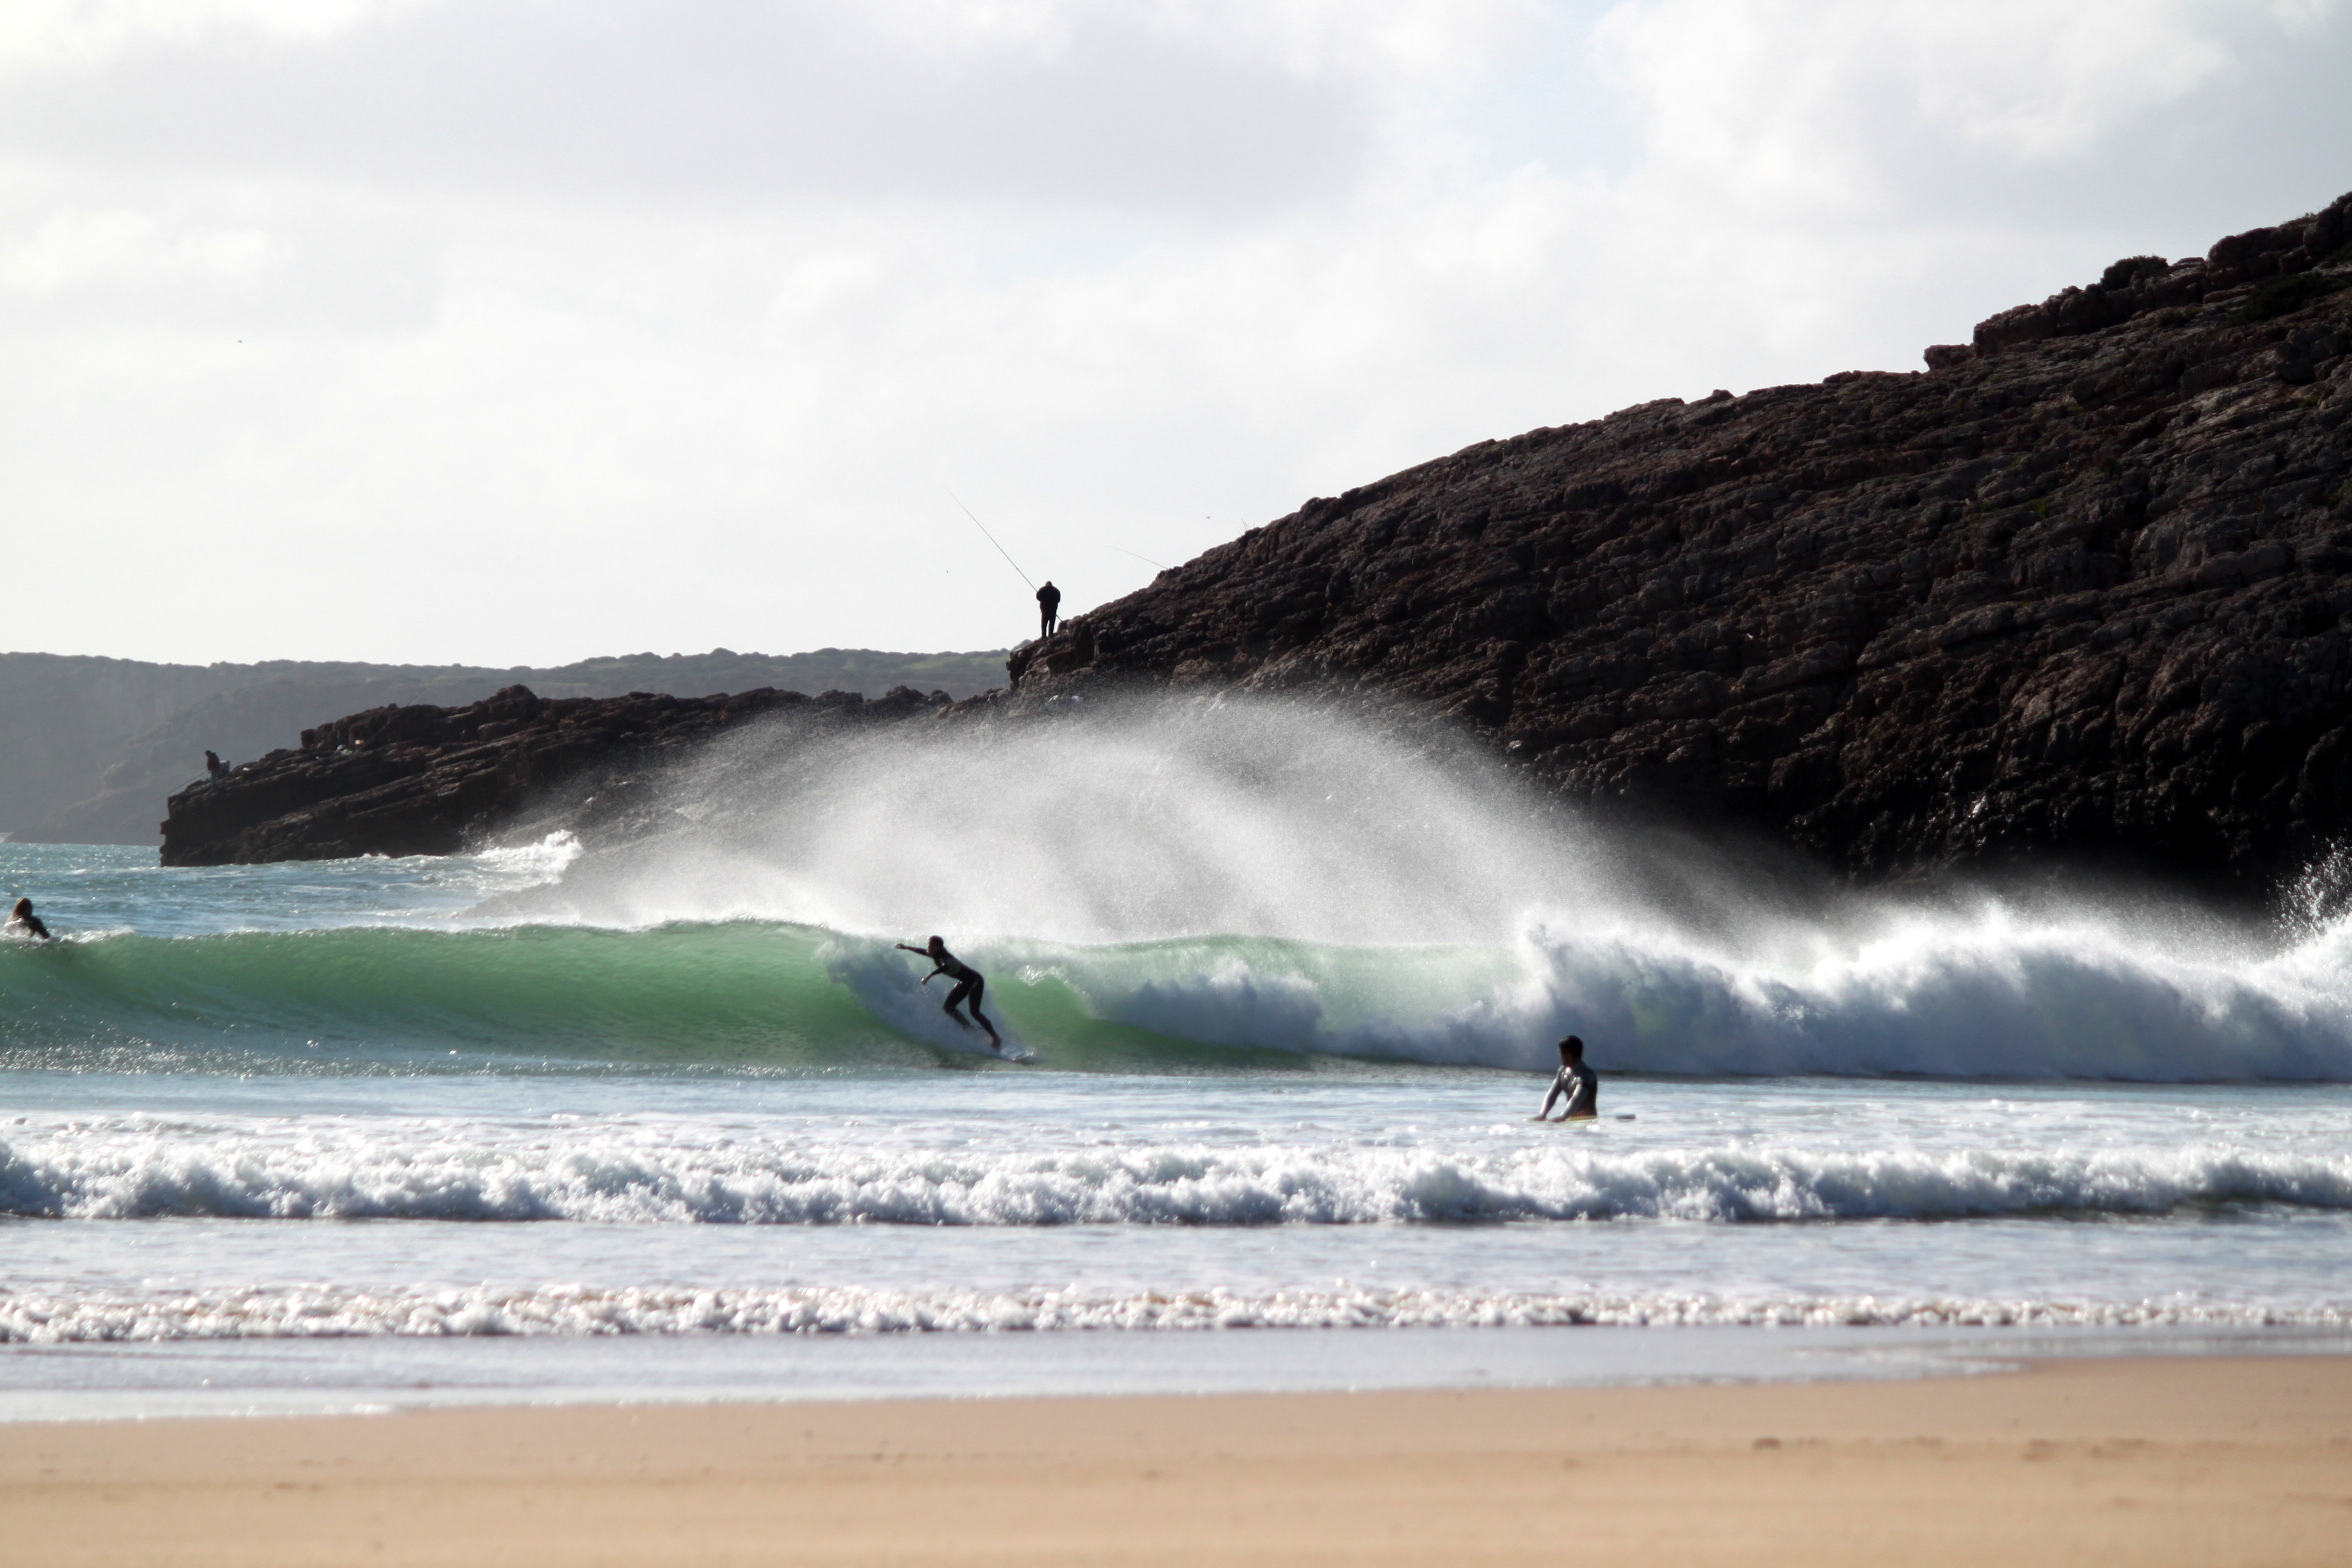 PROMO – BOOKED SURF OR KITE CAMP TO THE END OF MARCH AND TAKE A 15% DISCOUNT